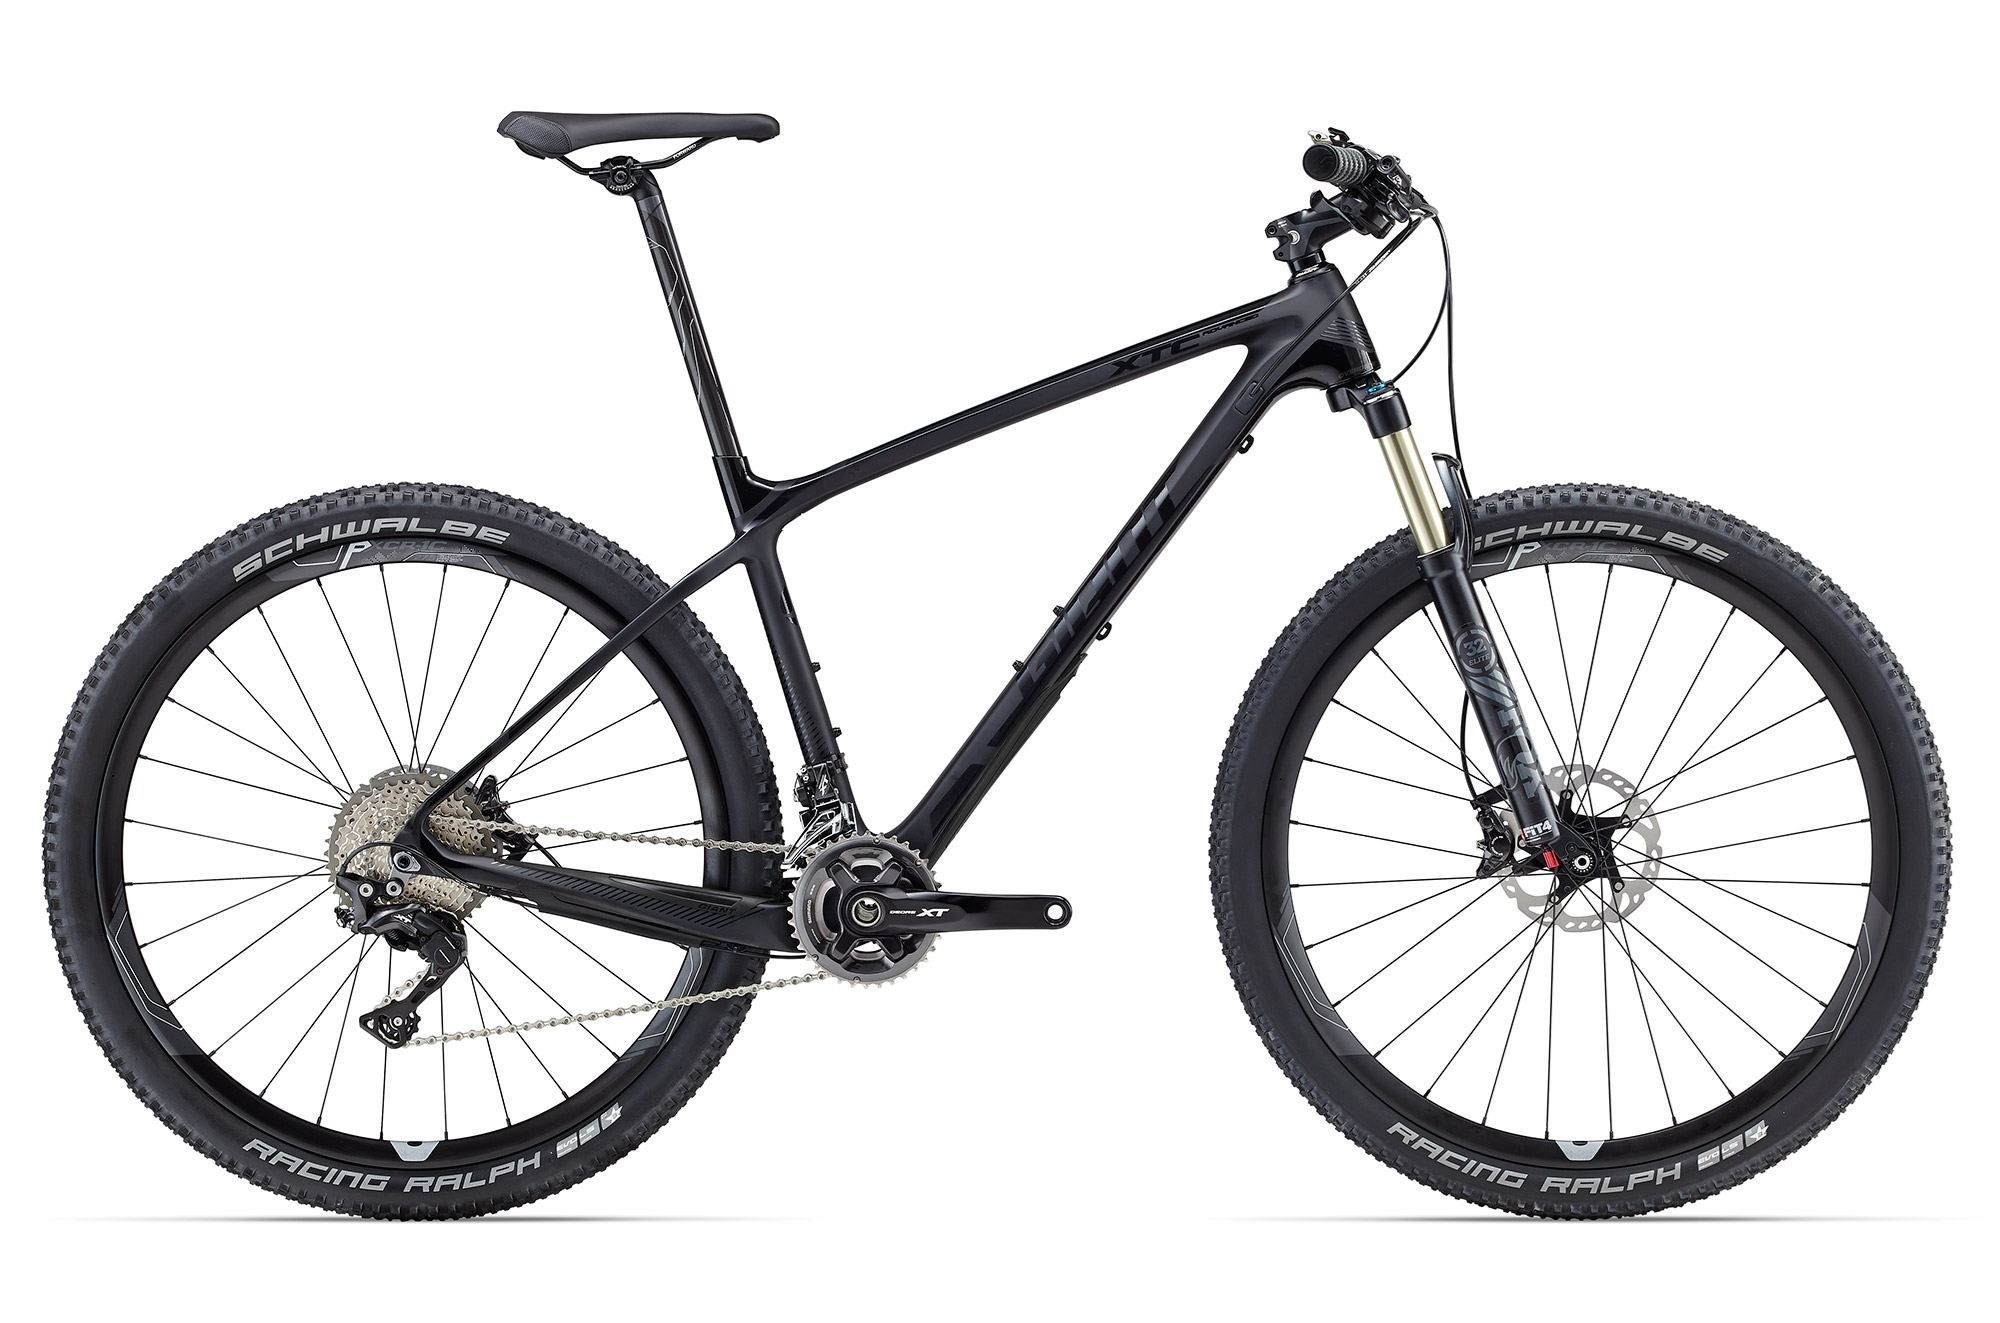 Велосипед Giant XtC Advanced 27.5 1 2016 велосипед giant trinity advanced pro 1 2016 page 8